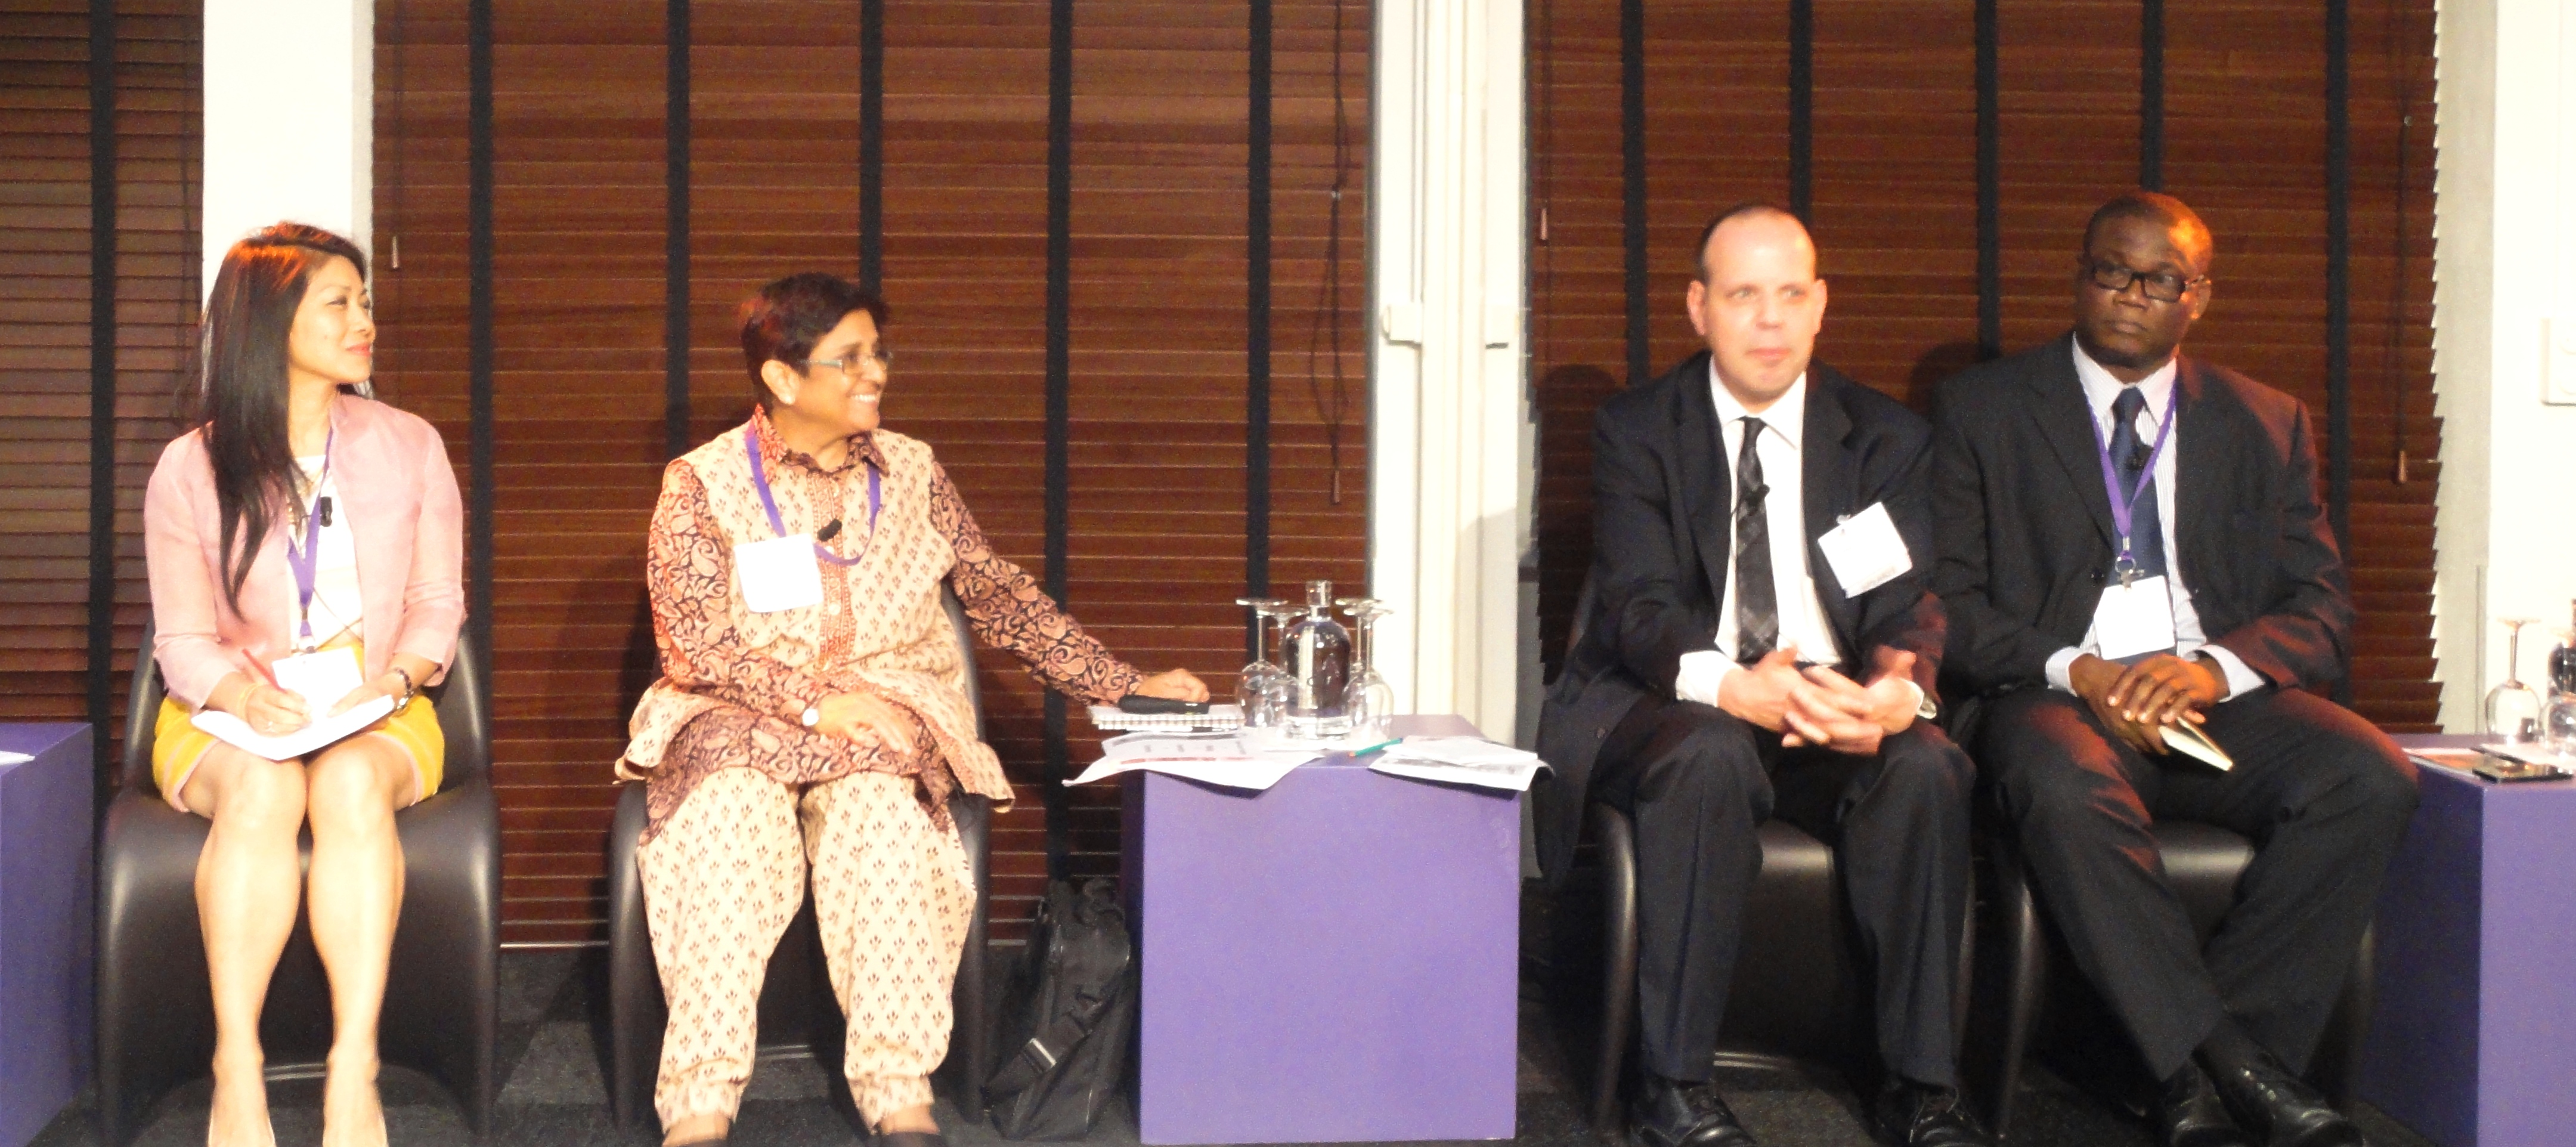 Panellists and moderator for the Security and Law Enforcement Panel